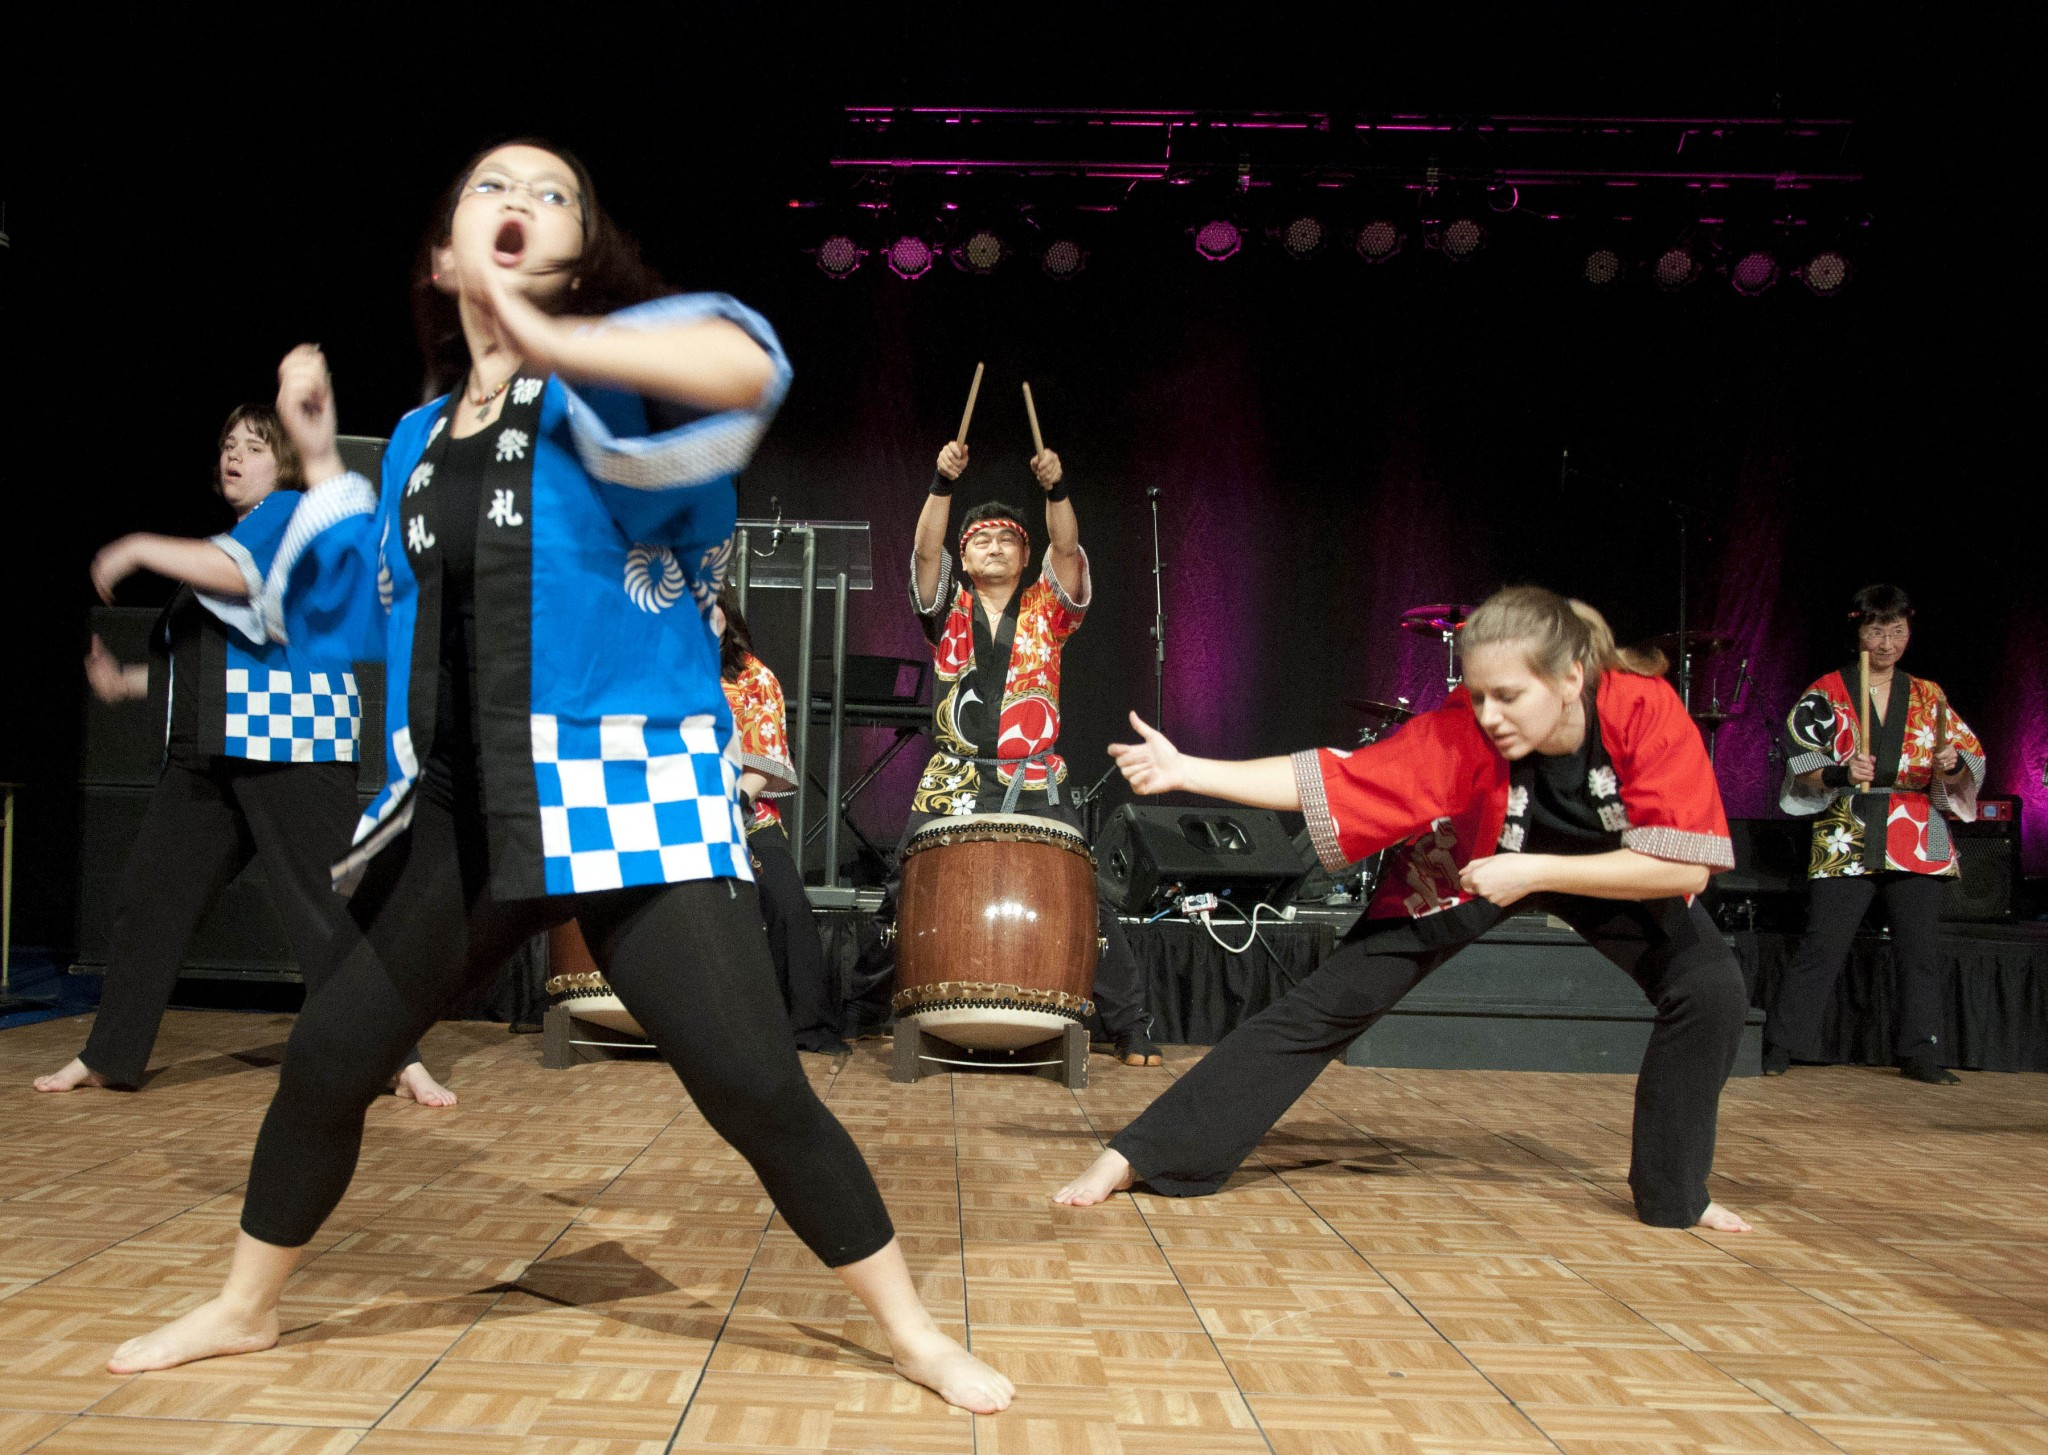 Mary-Grace Maung (blue) and Tiffany Rivette (red) performing the Soran Bushi at the International Days showcase. - Photo by Allison Declercq-Matthas